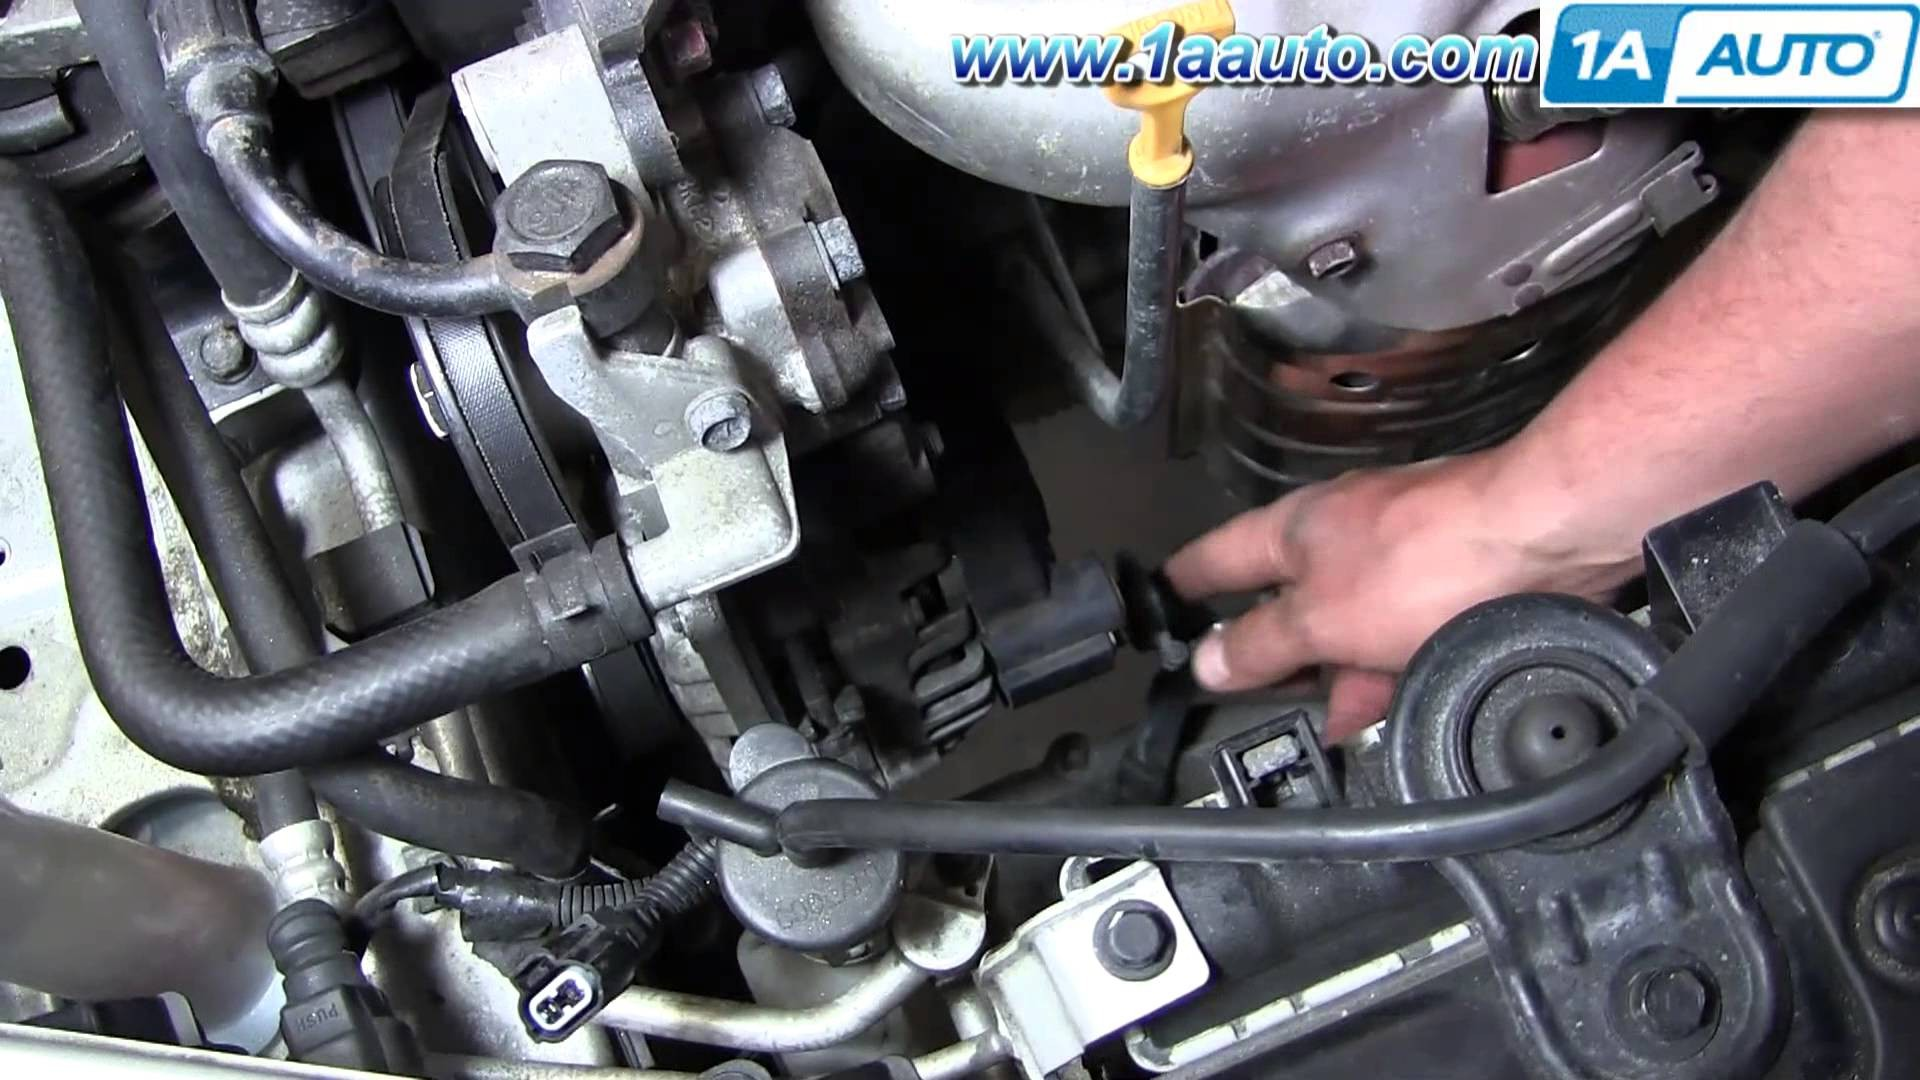 2003 Hyundai Elantra Engine Diagram How to Install Replace Alternator 2001 06 Hyundai Elantra 2 0l Of 2003 Hyundai Elantra Engine Diagram